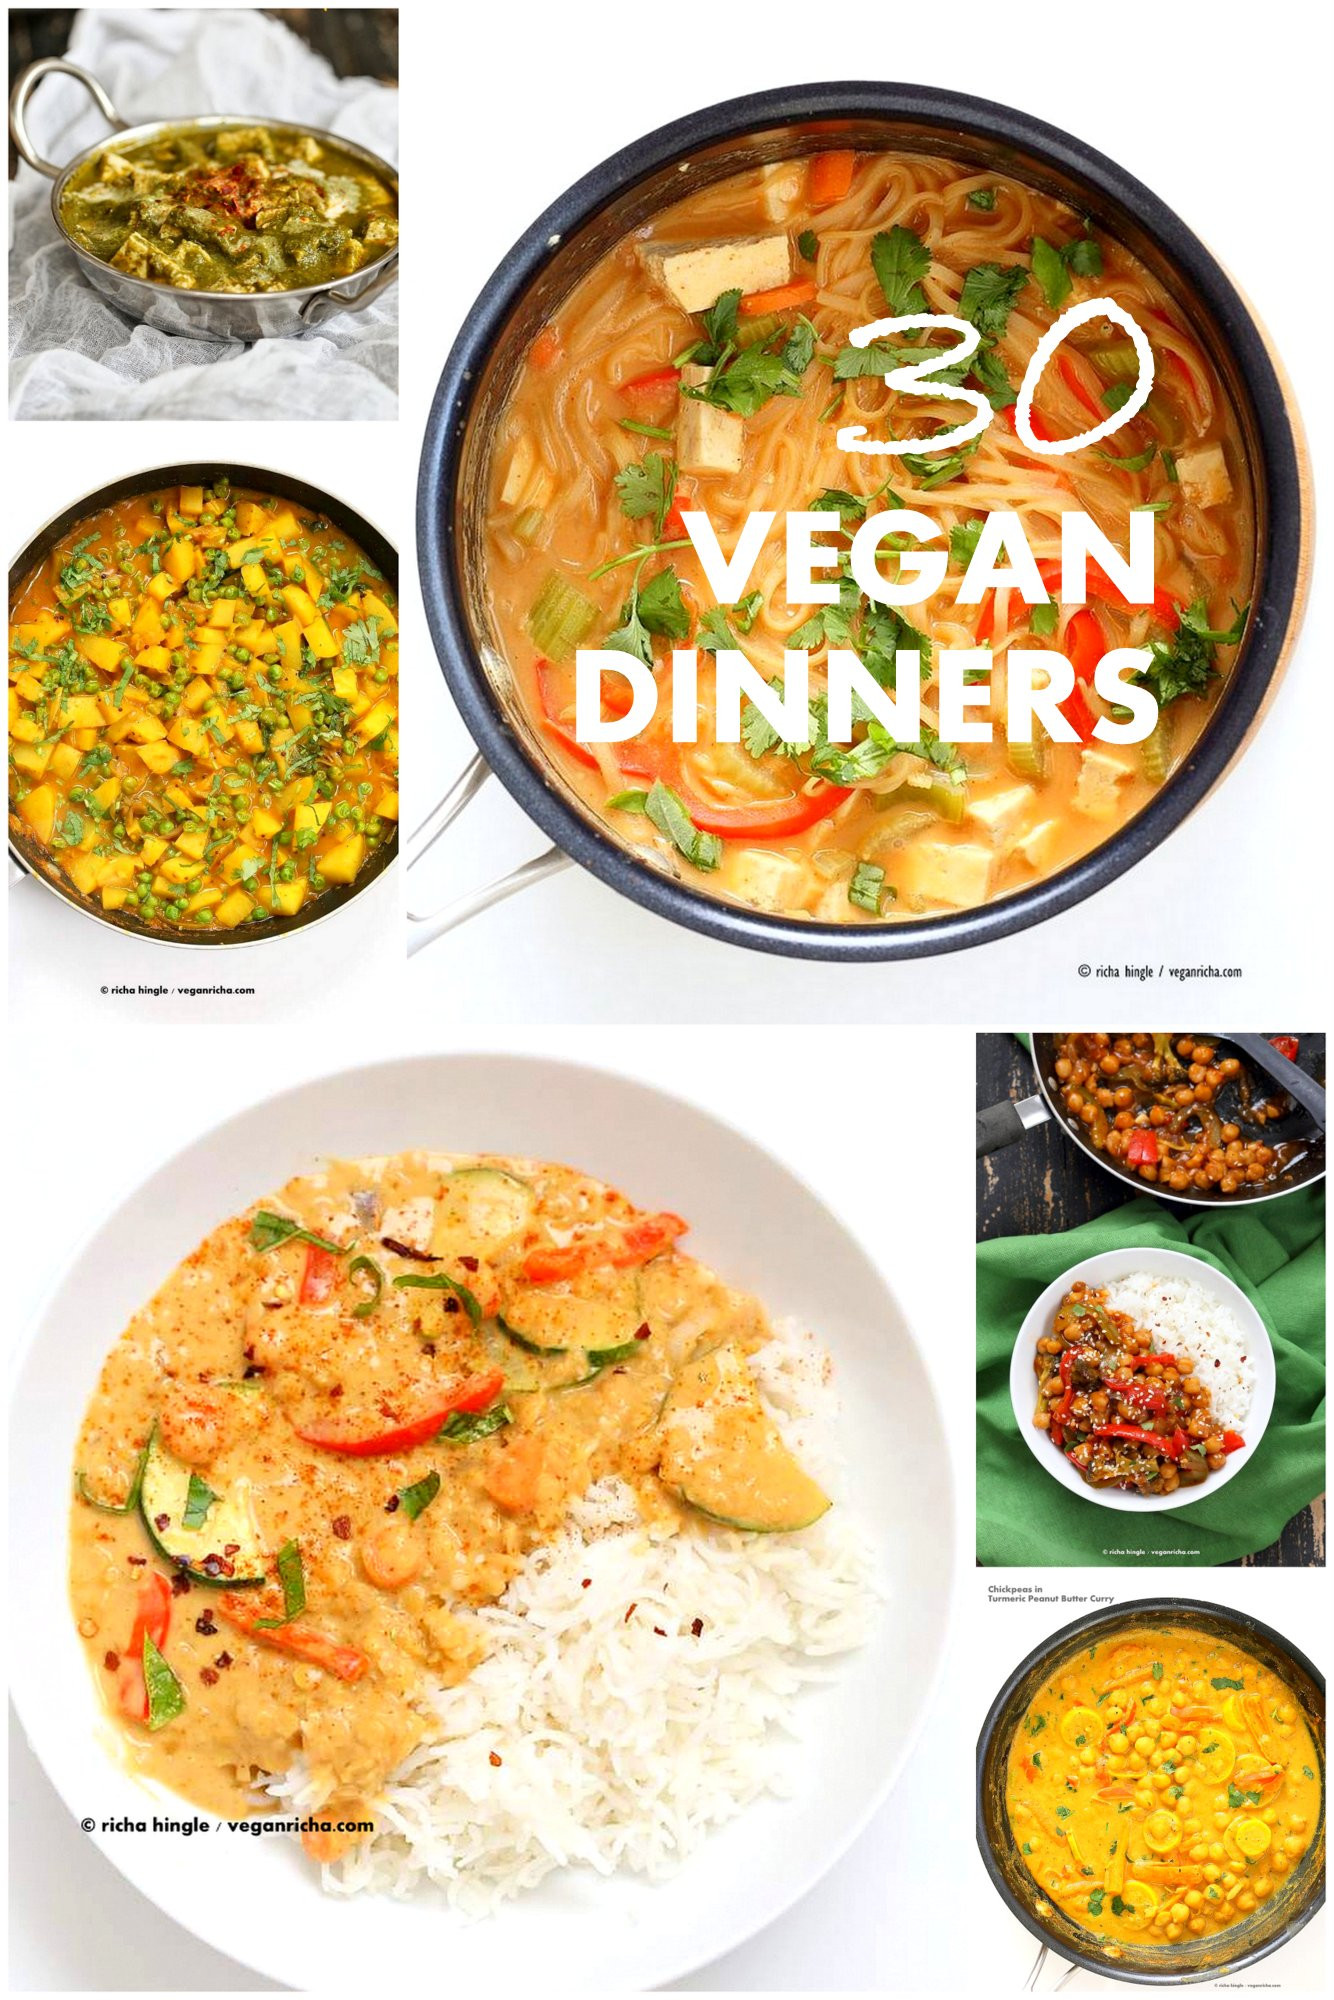 Vegan Recipes Dinner  30 Easy Vegan Dinner Recipes Vegan Richa